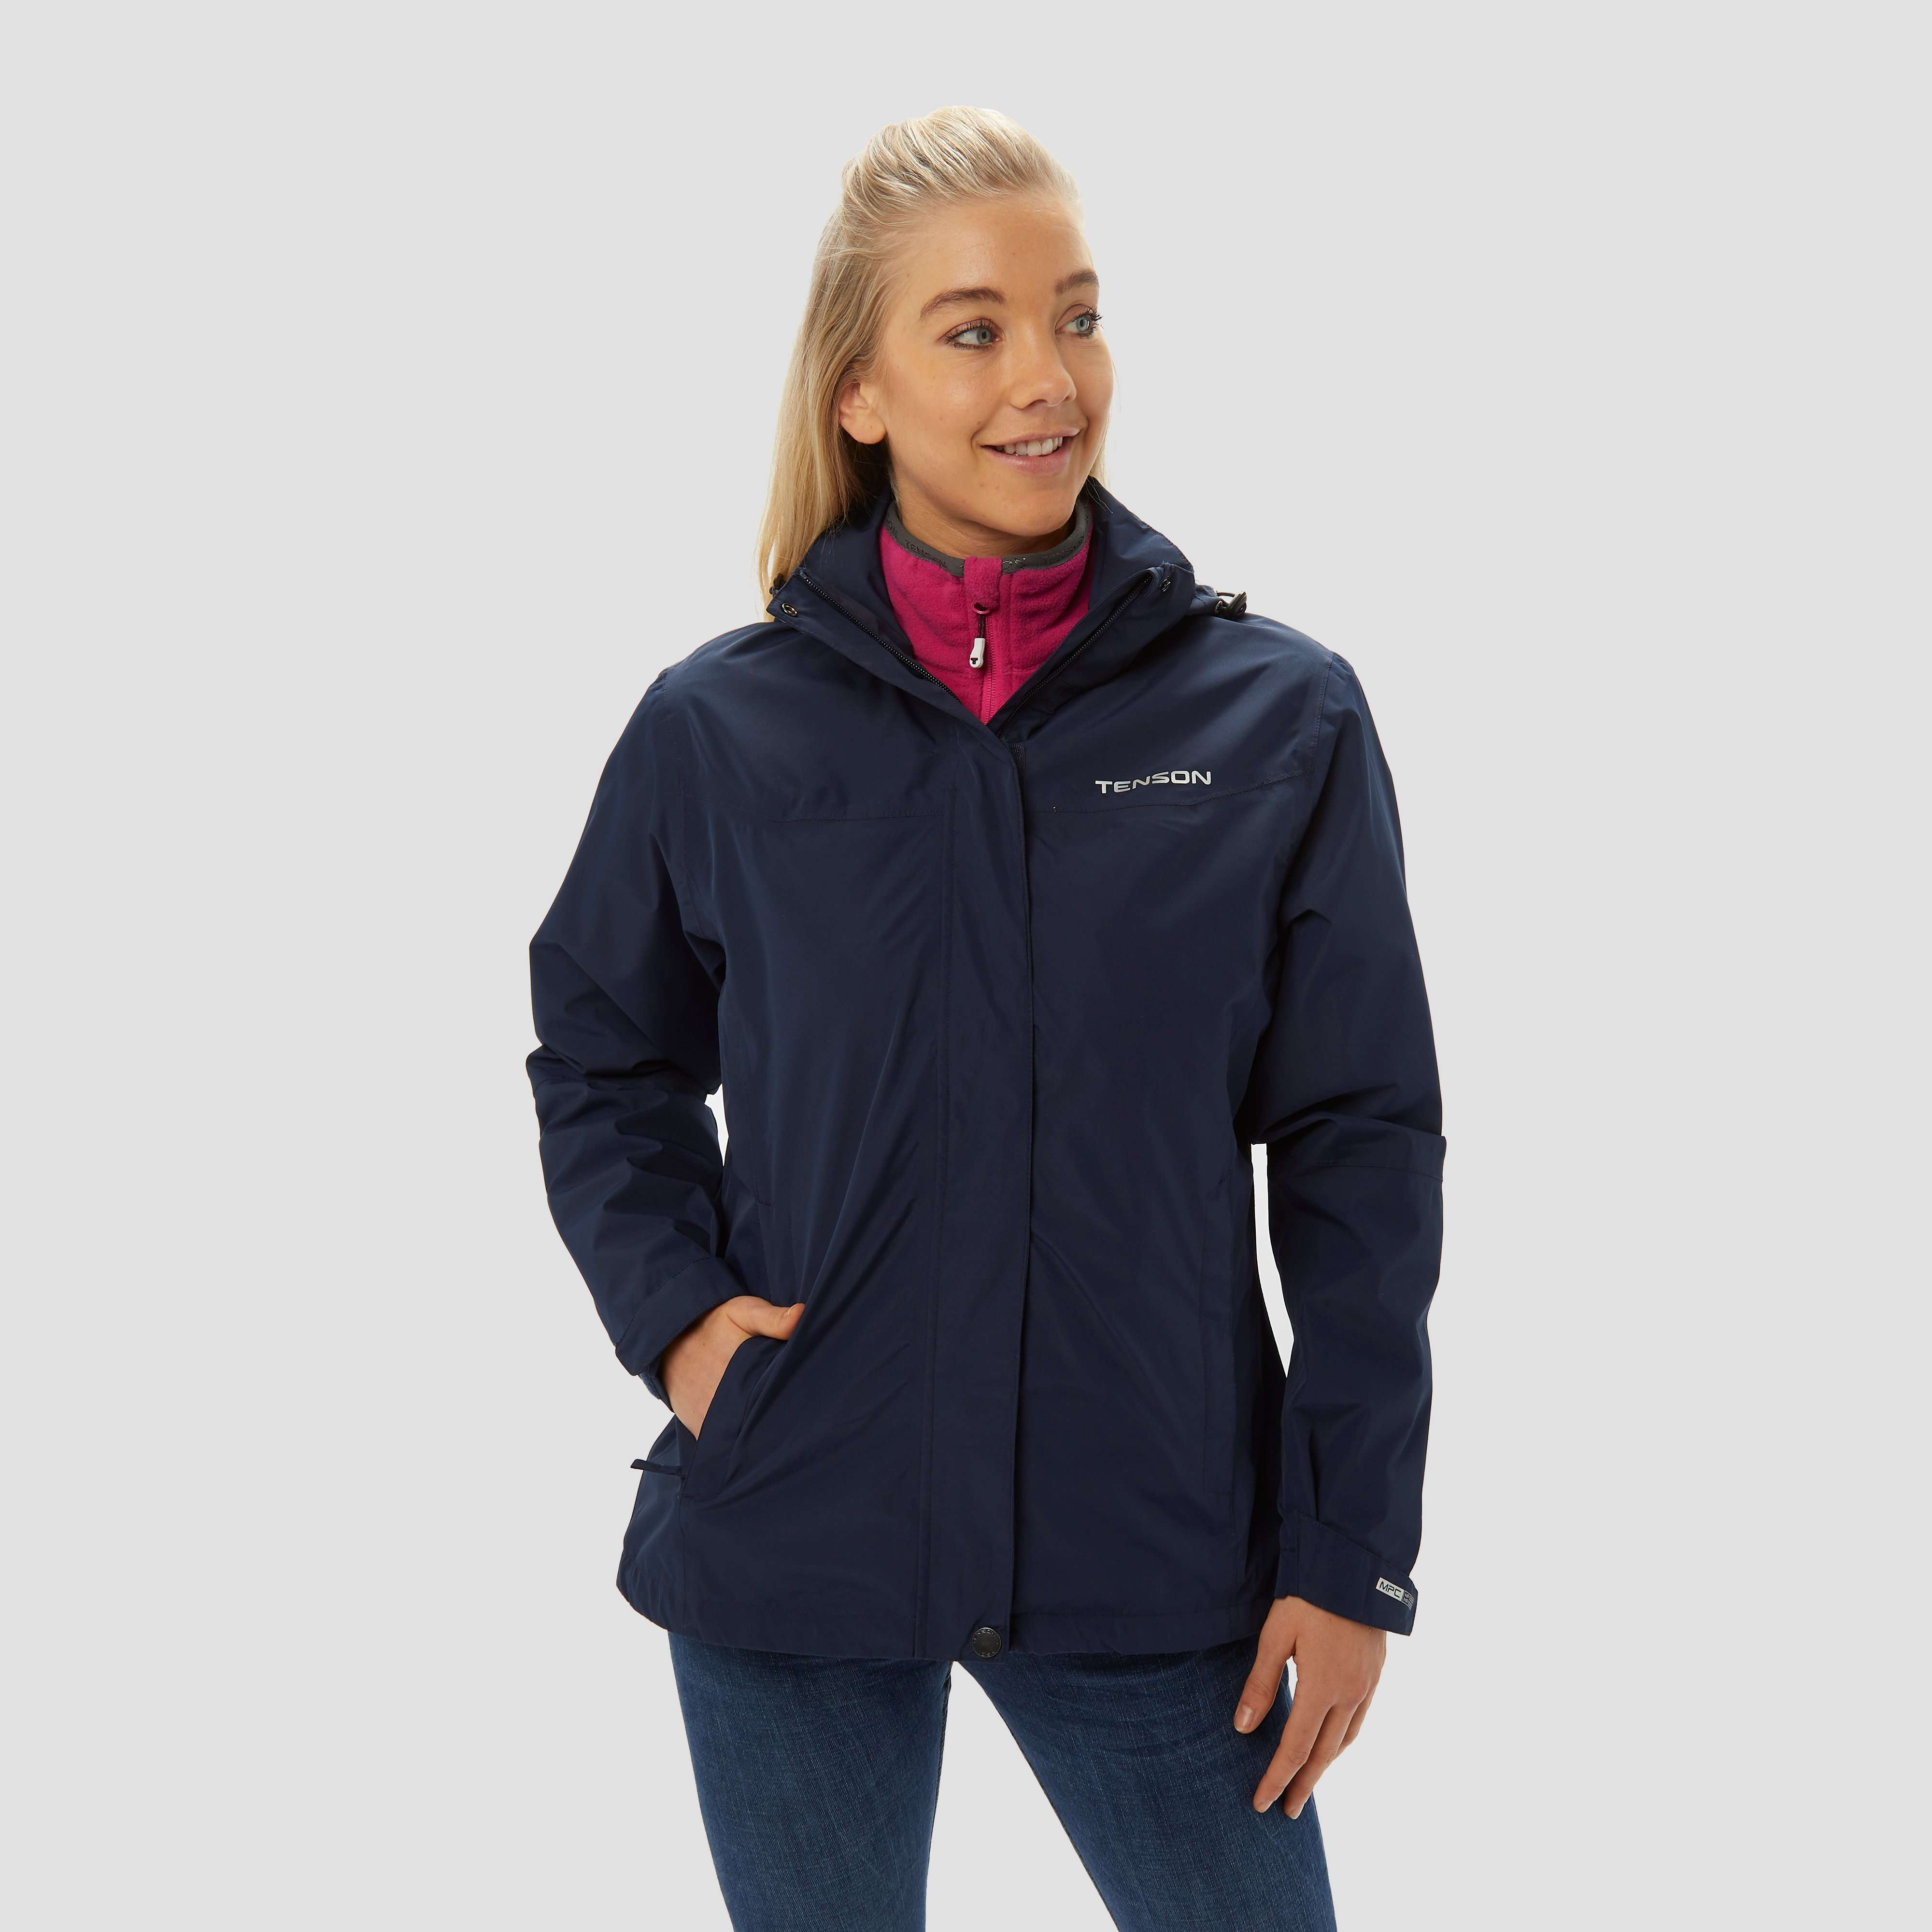 TENSON MONITOR MPC OUTDOOR JAS BLAUW DAMES